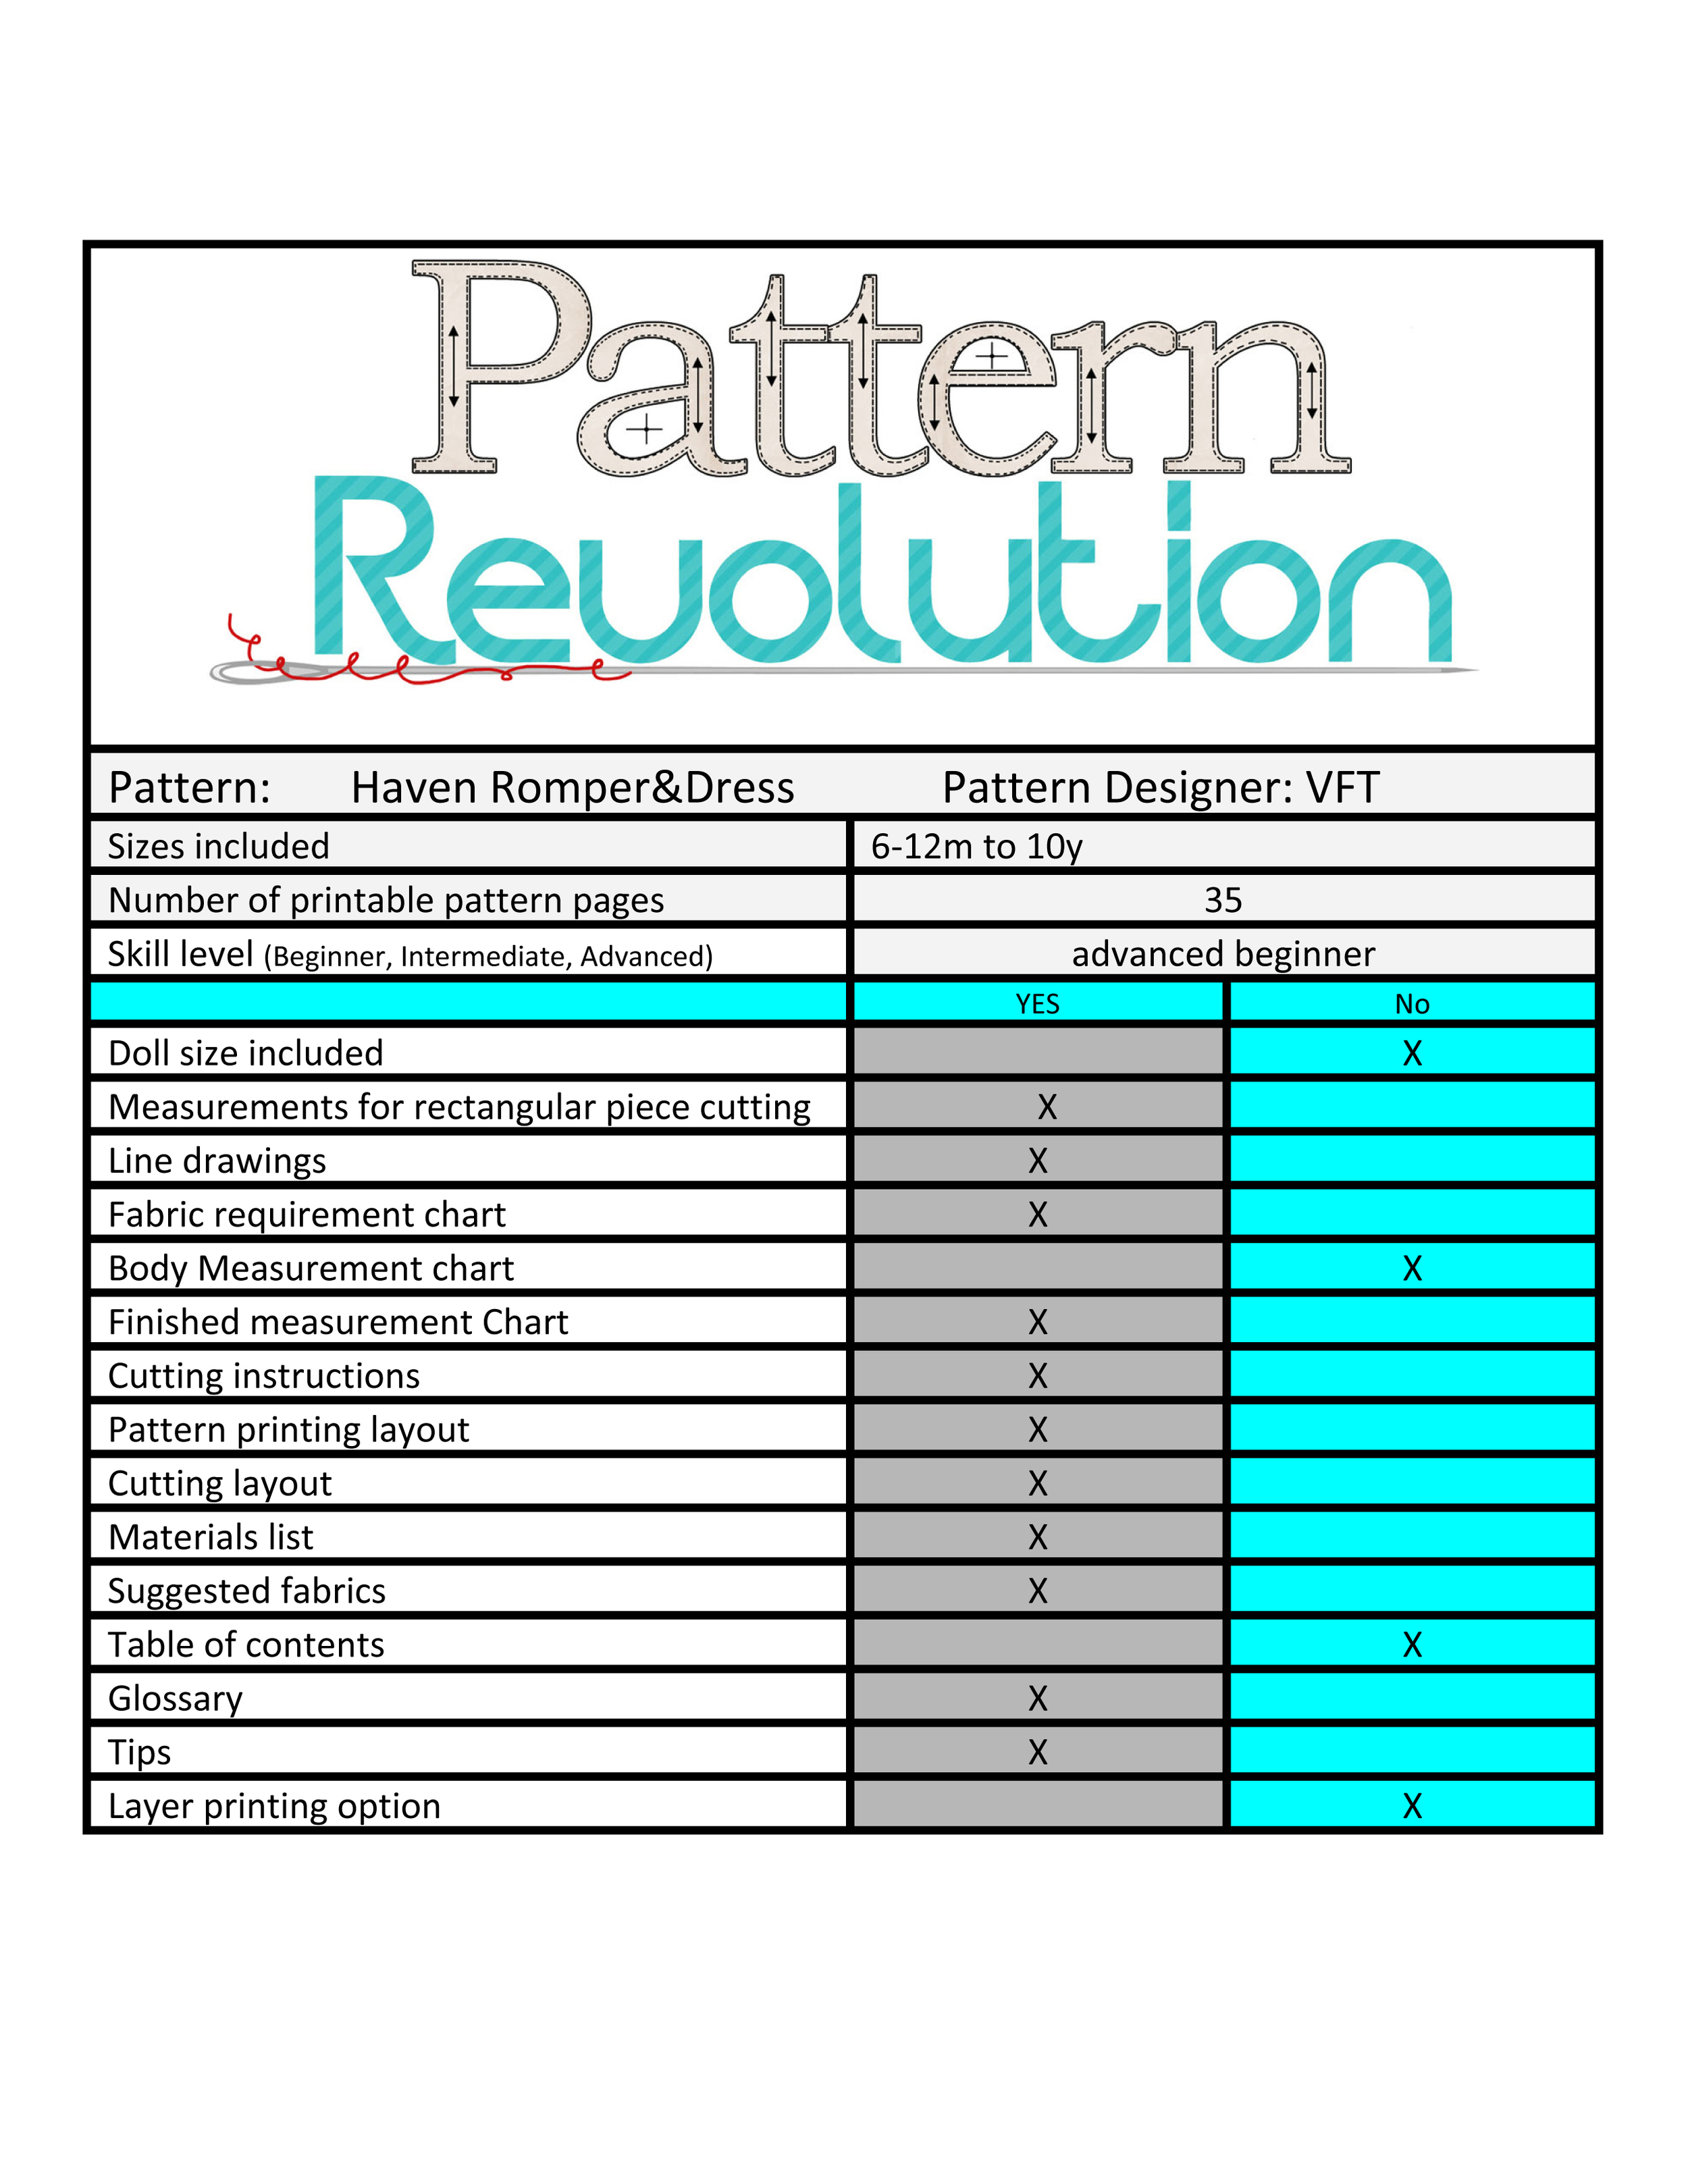 While the pattern pages to print are 35, the pattern does list which pages you need for which version, and includes optional measurements for rectangles so that you don't have to print those pages.